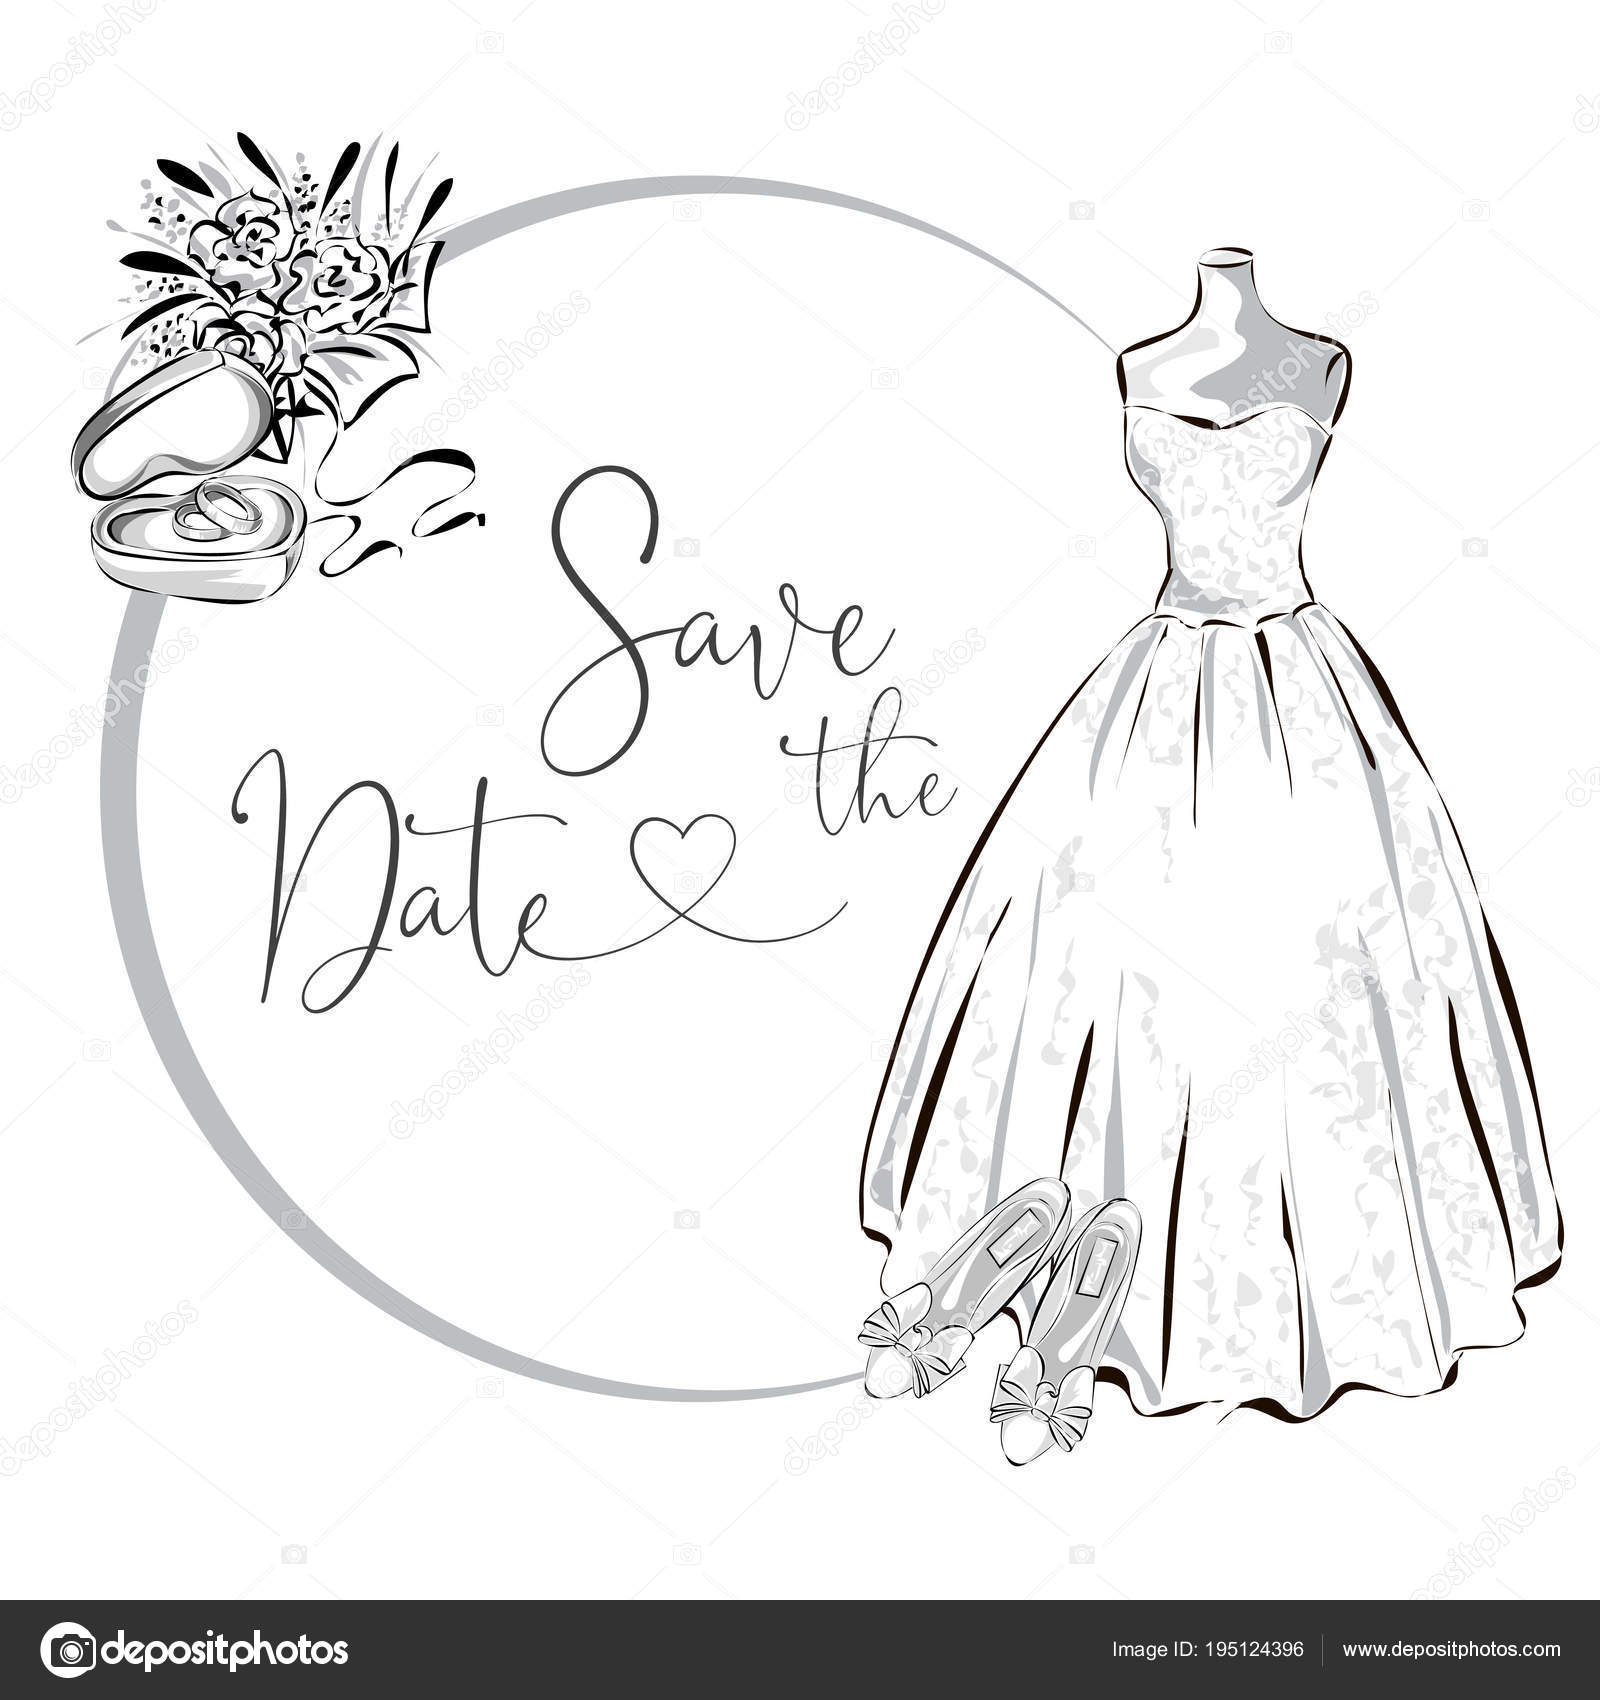 Wedding clipart set with wedding dress, flowers and wedding rings.